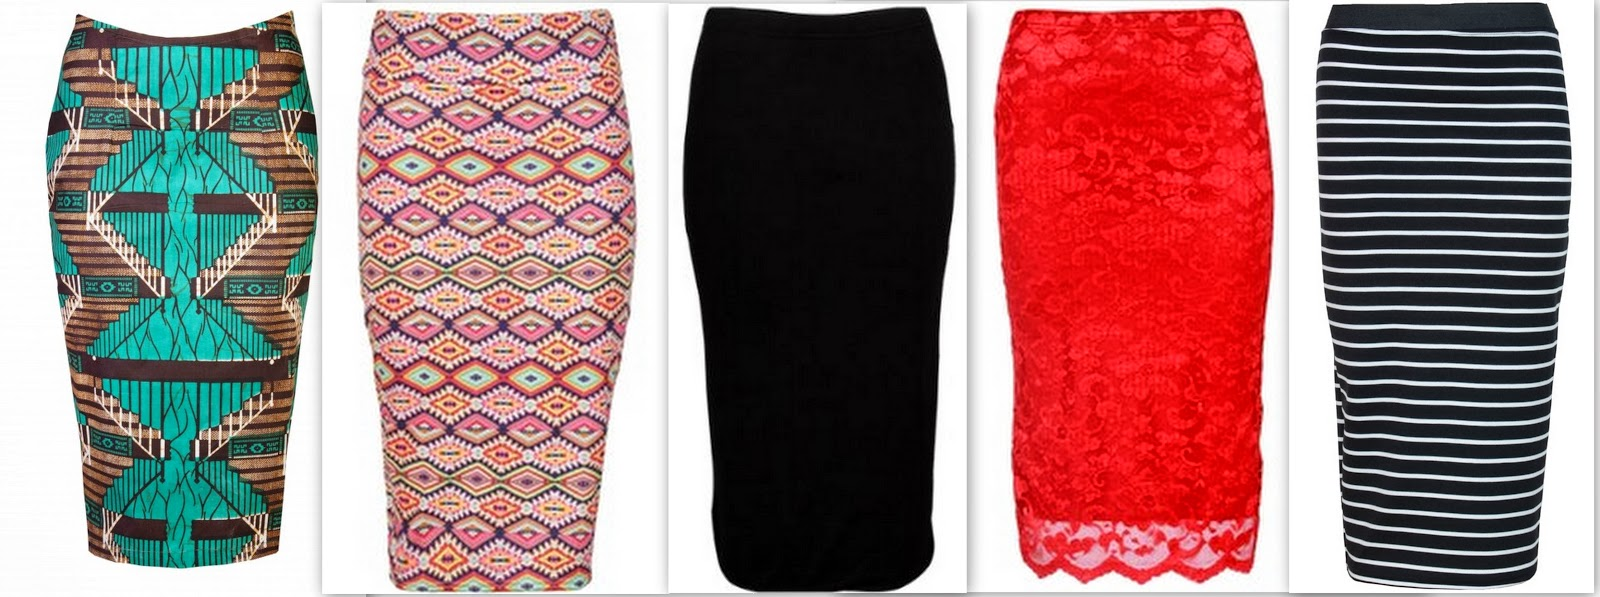 midi skirts, printed midi skirts, black midi skirts, red lace midi skirts, striped midi skirts,